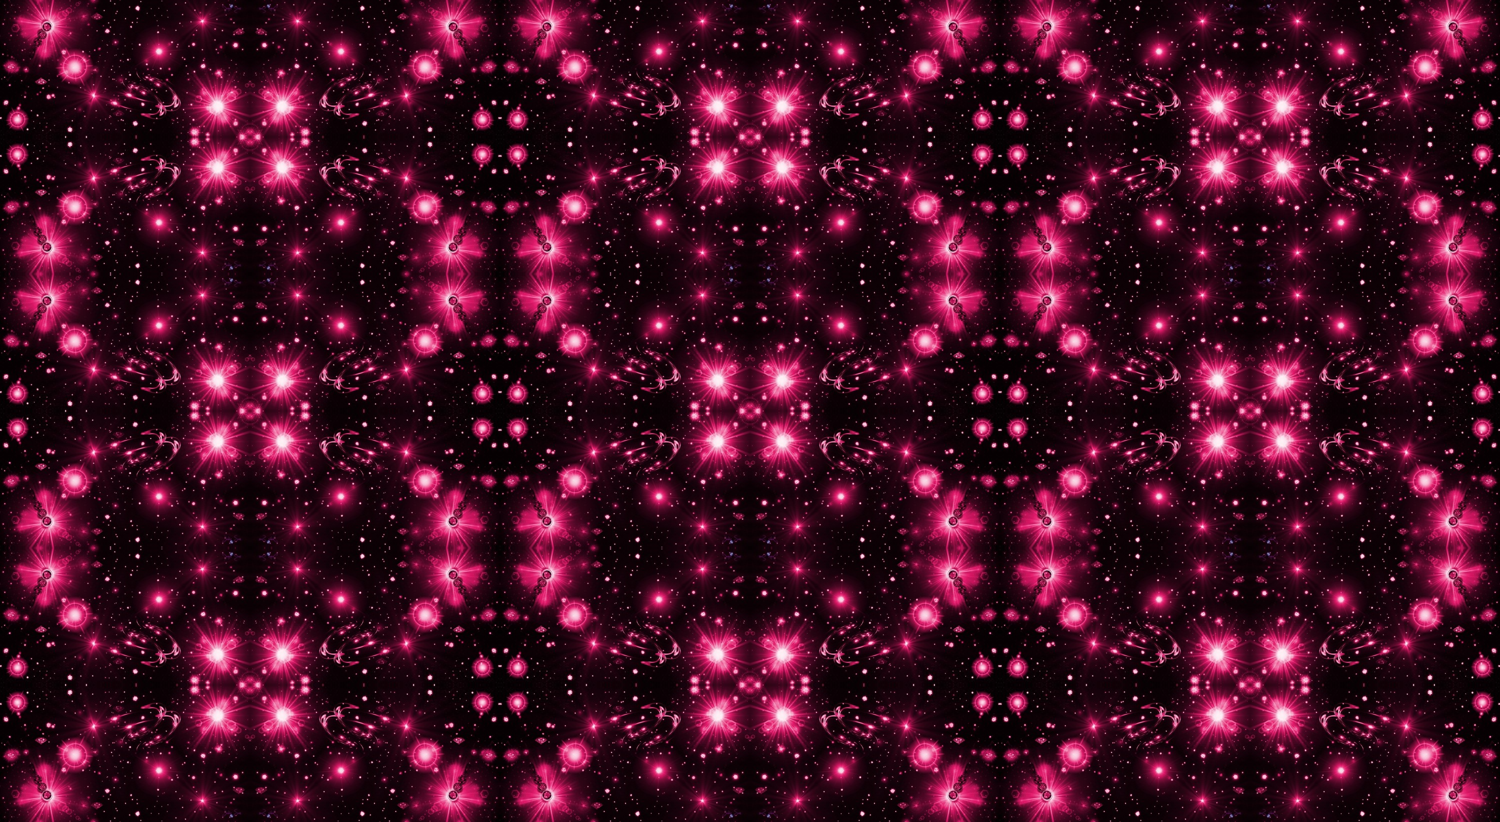 Hot Pink Wallpaper 23 Cool Wallpaper - Hdblackwallpaper com